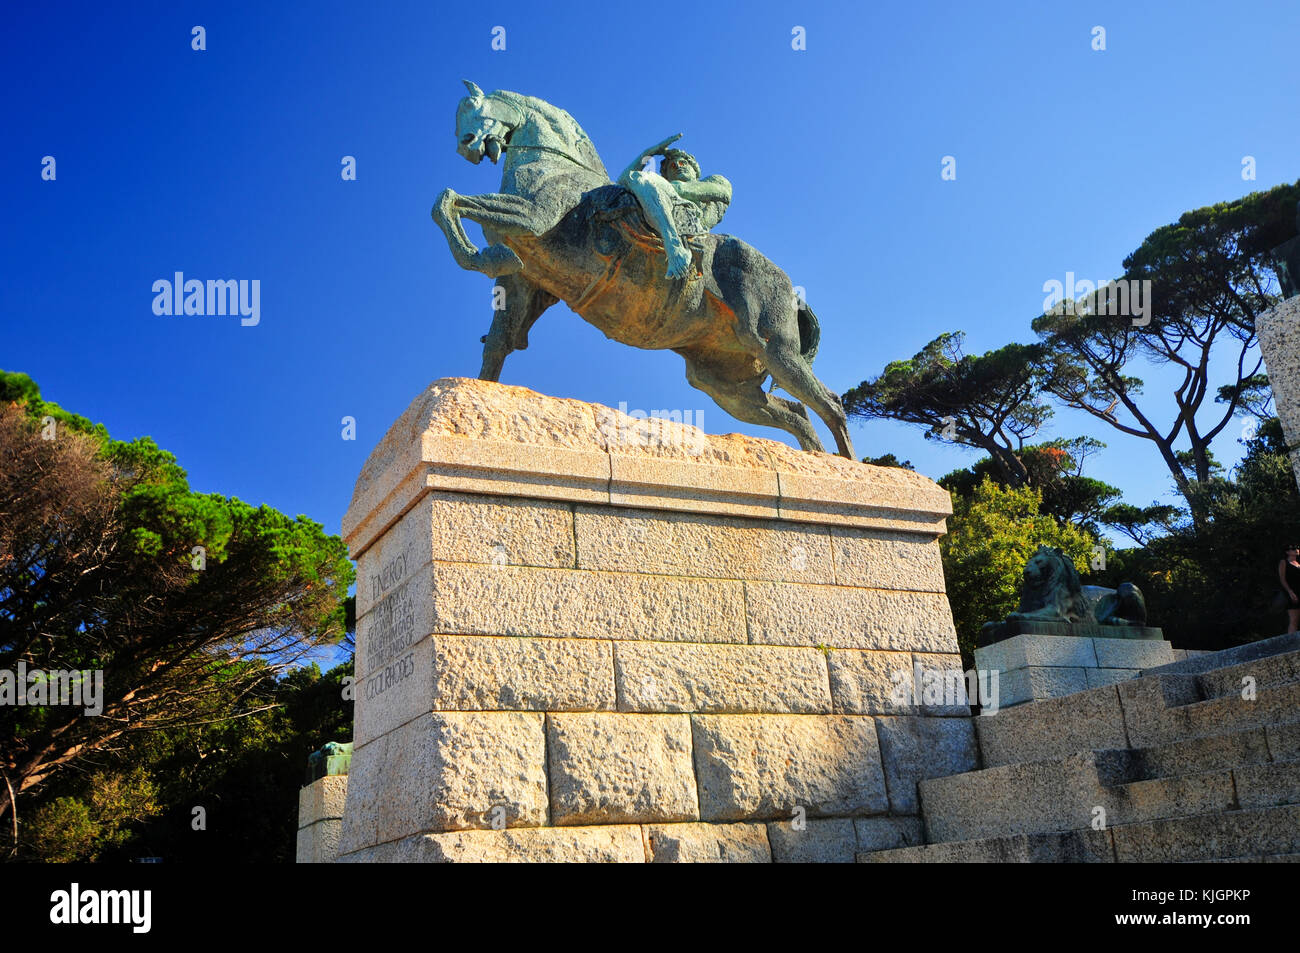 Cape Town, South Africa - March 25, 2012: The Rhodes Memorial monument in Cape Town, South Africa, on Table Mountain, - Stock Image